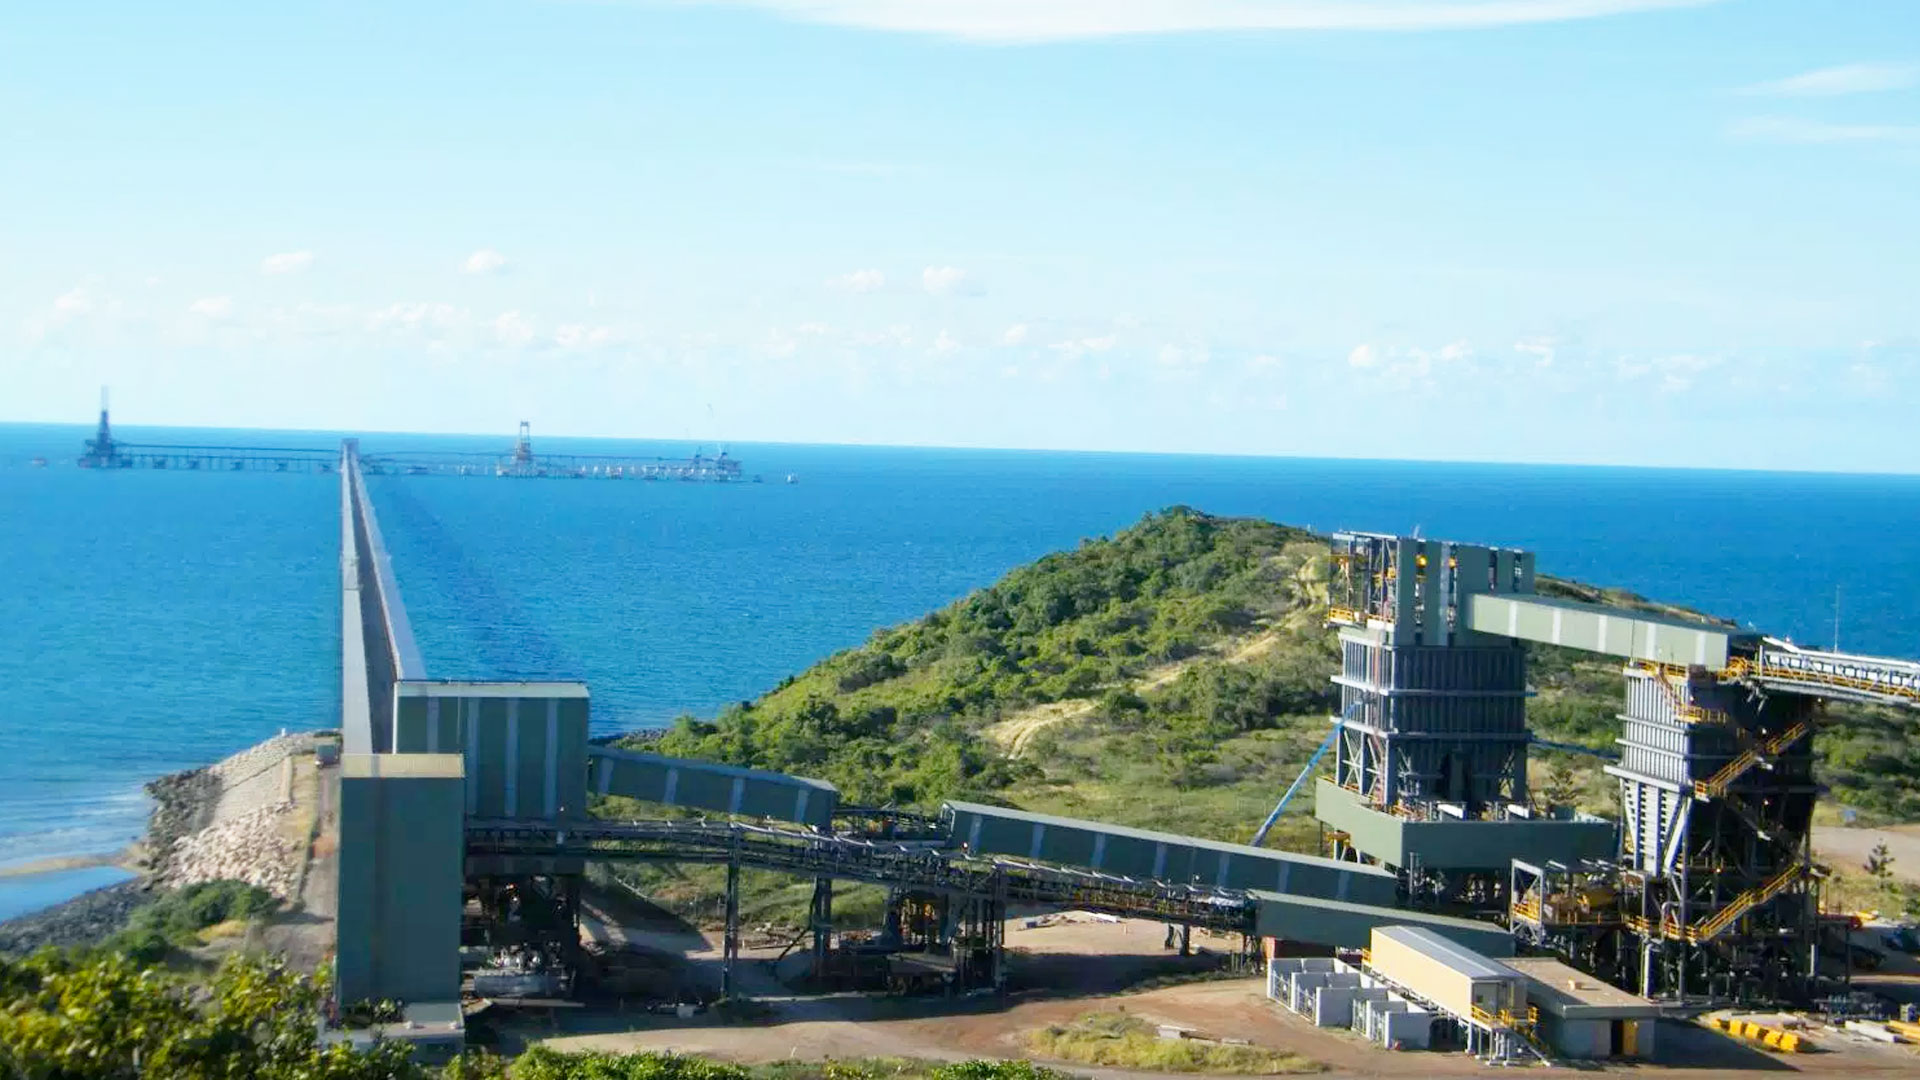 abbot-point-sun-engineering-qld-slide